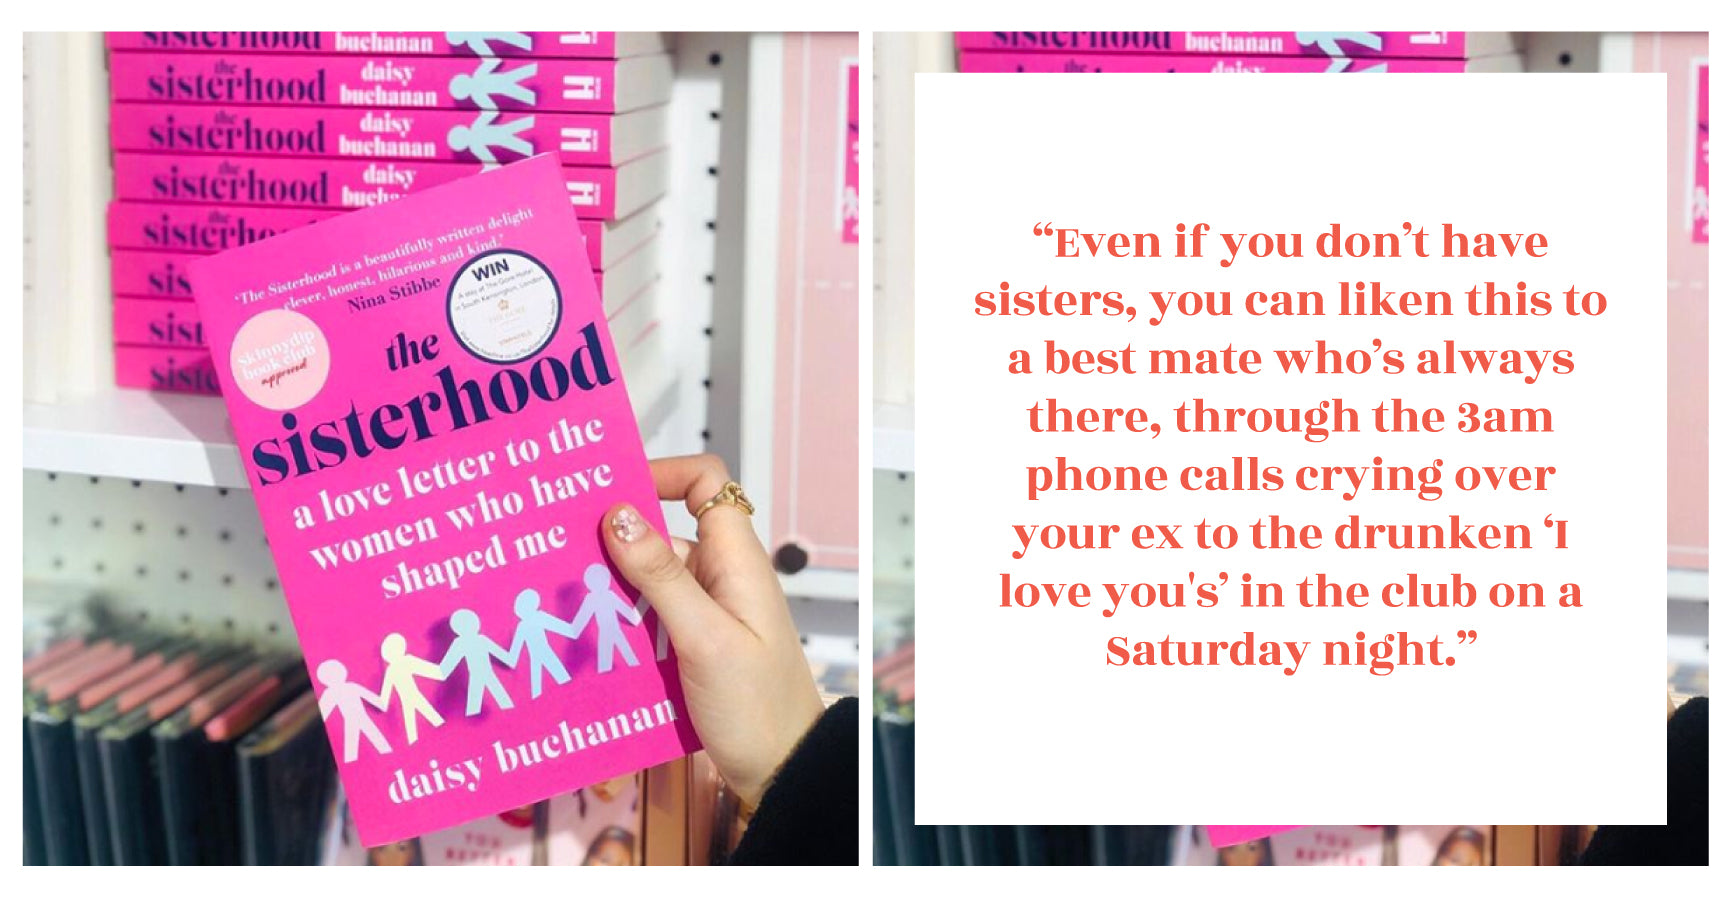 The Sisterhood Book by Daisy Buchanan | Skinnydip London